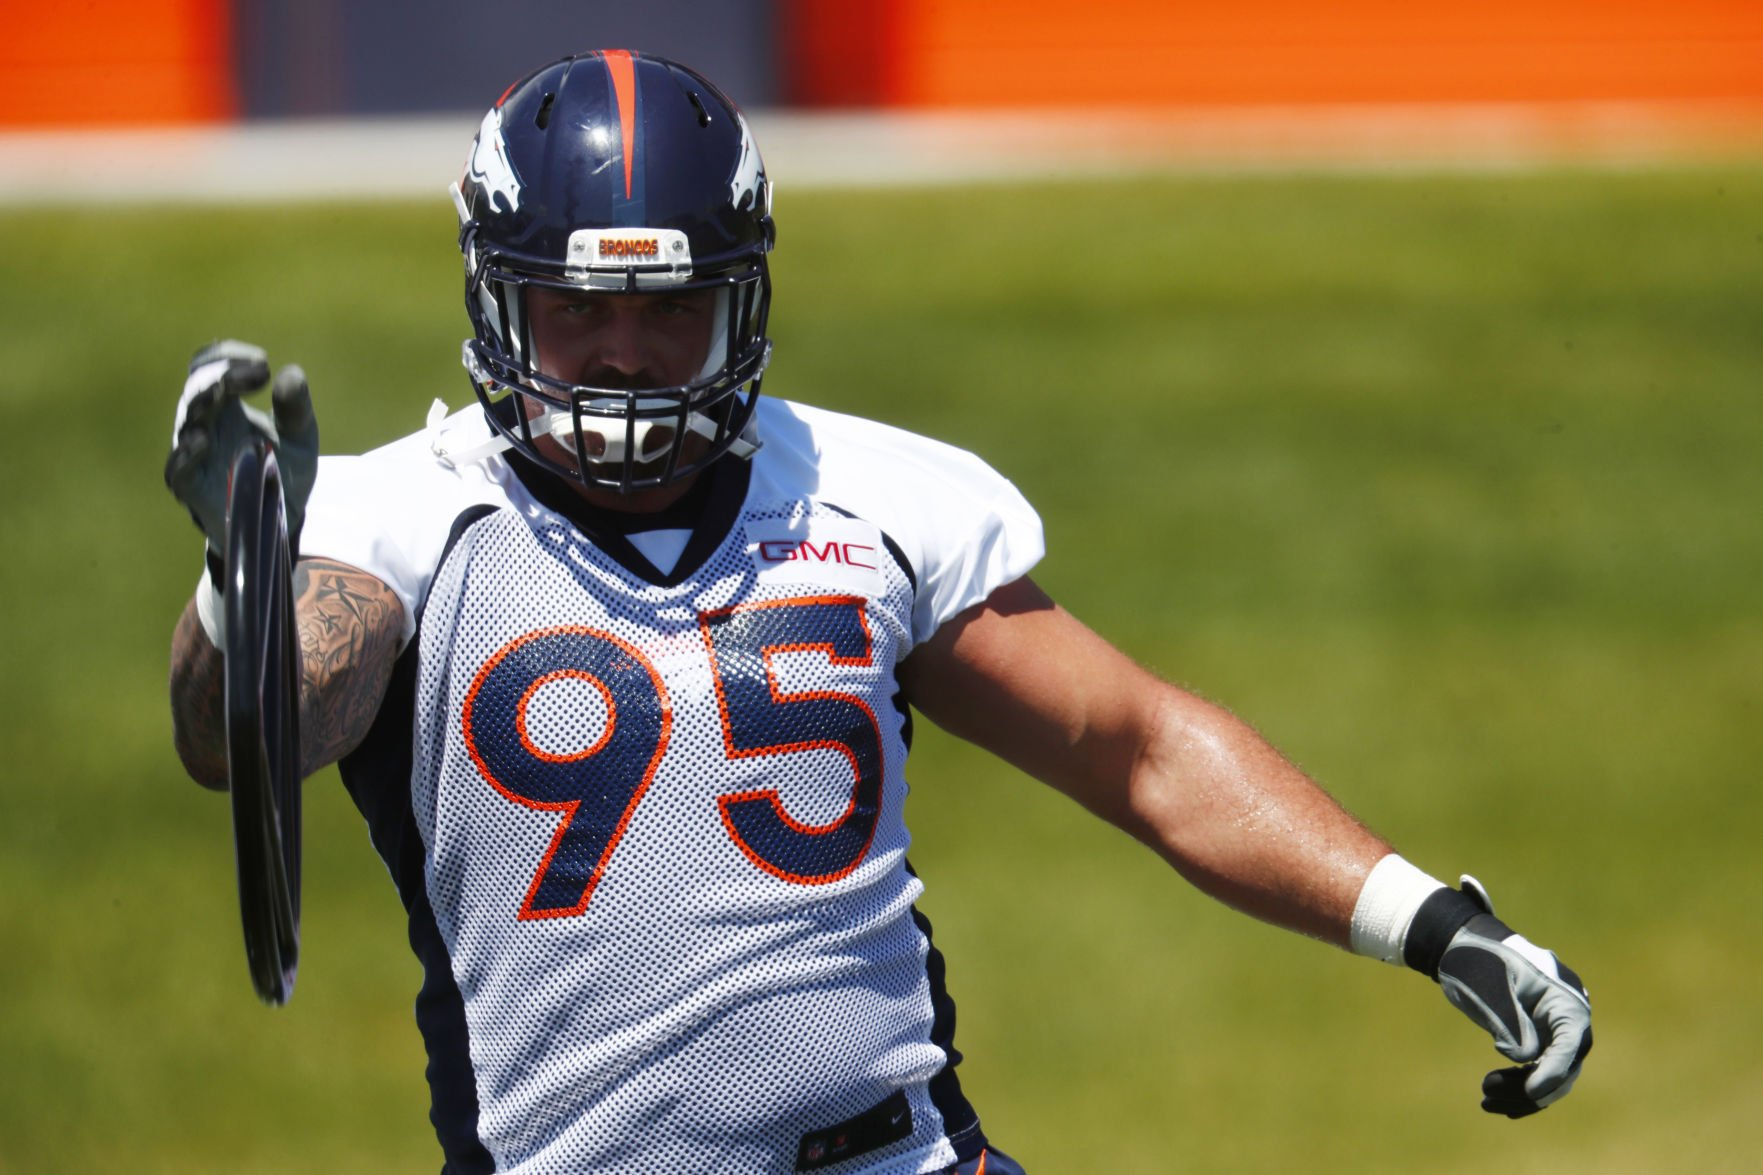 Derek Wolfe starter carted off after apparent right leg injury